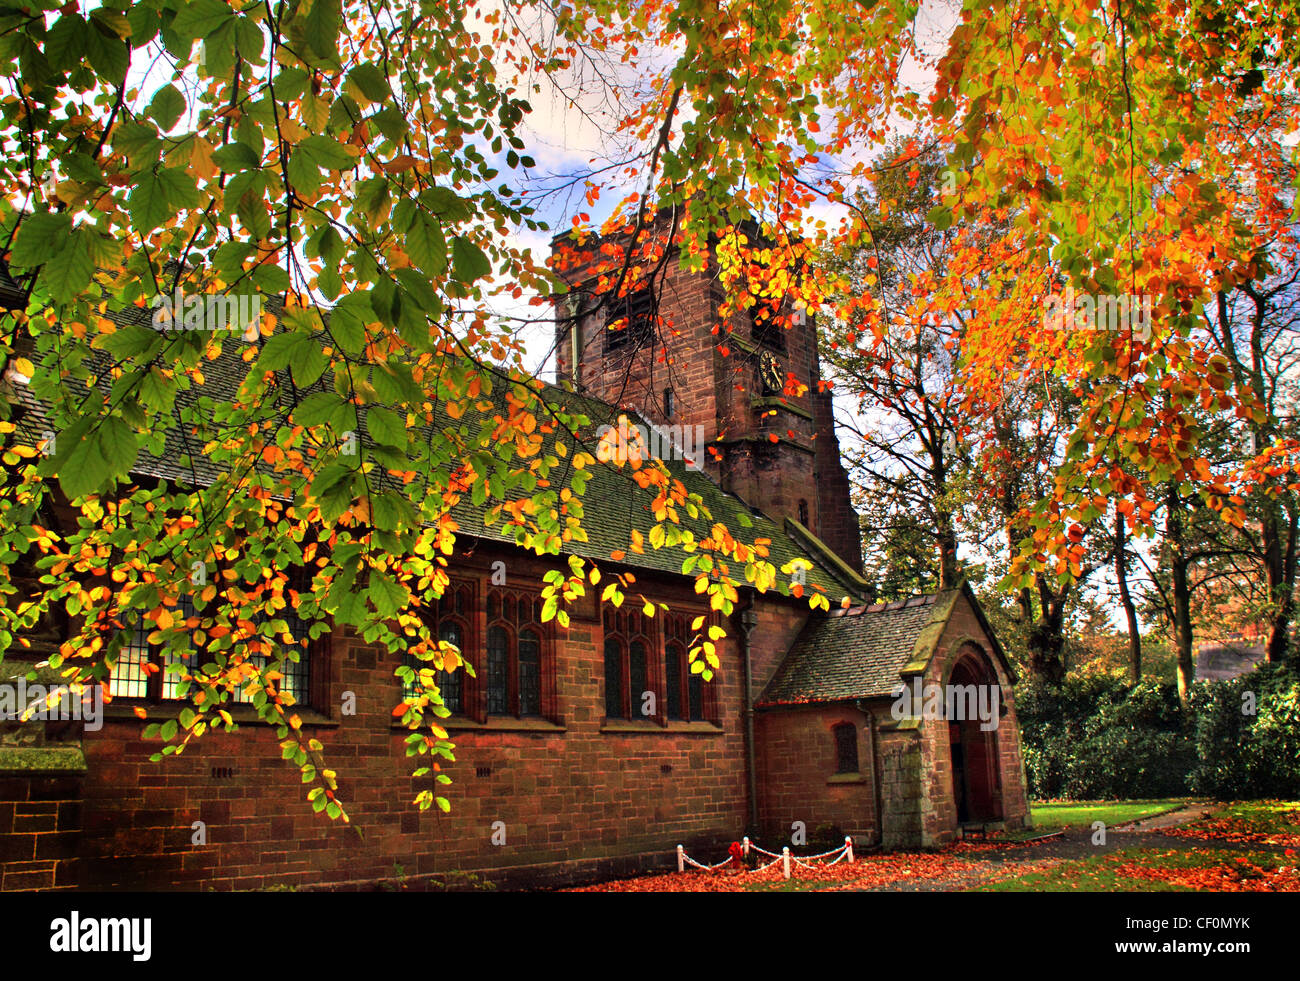 St John the Evangelist's Church, Sandiway in Autumn - Stock Image